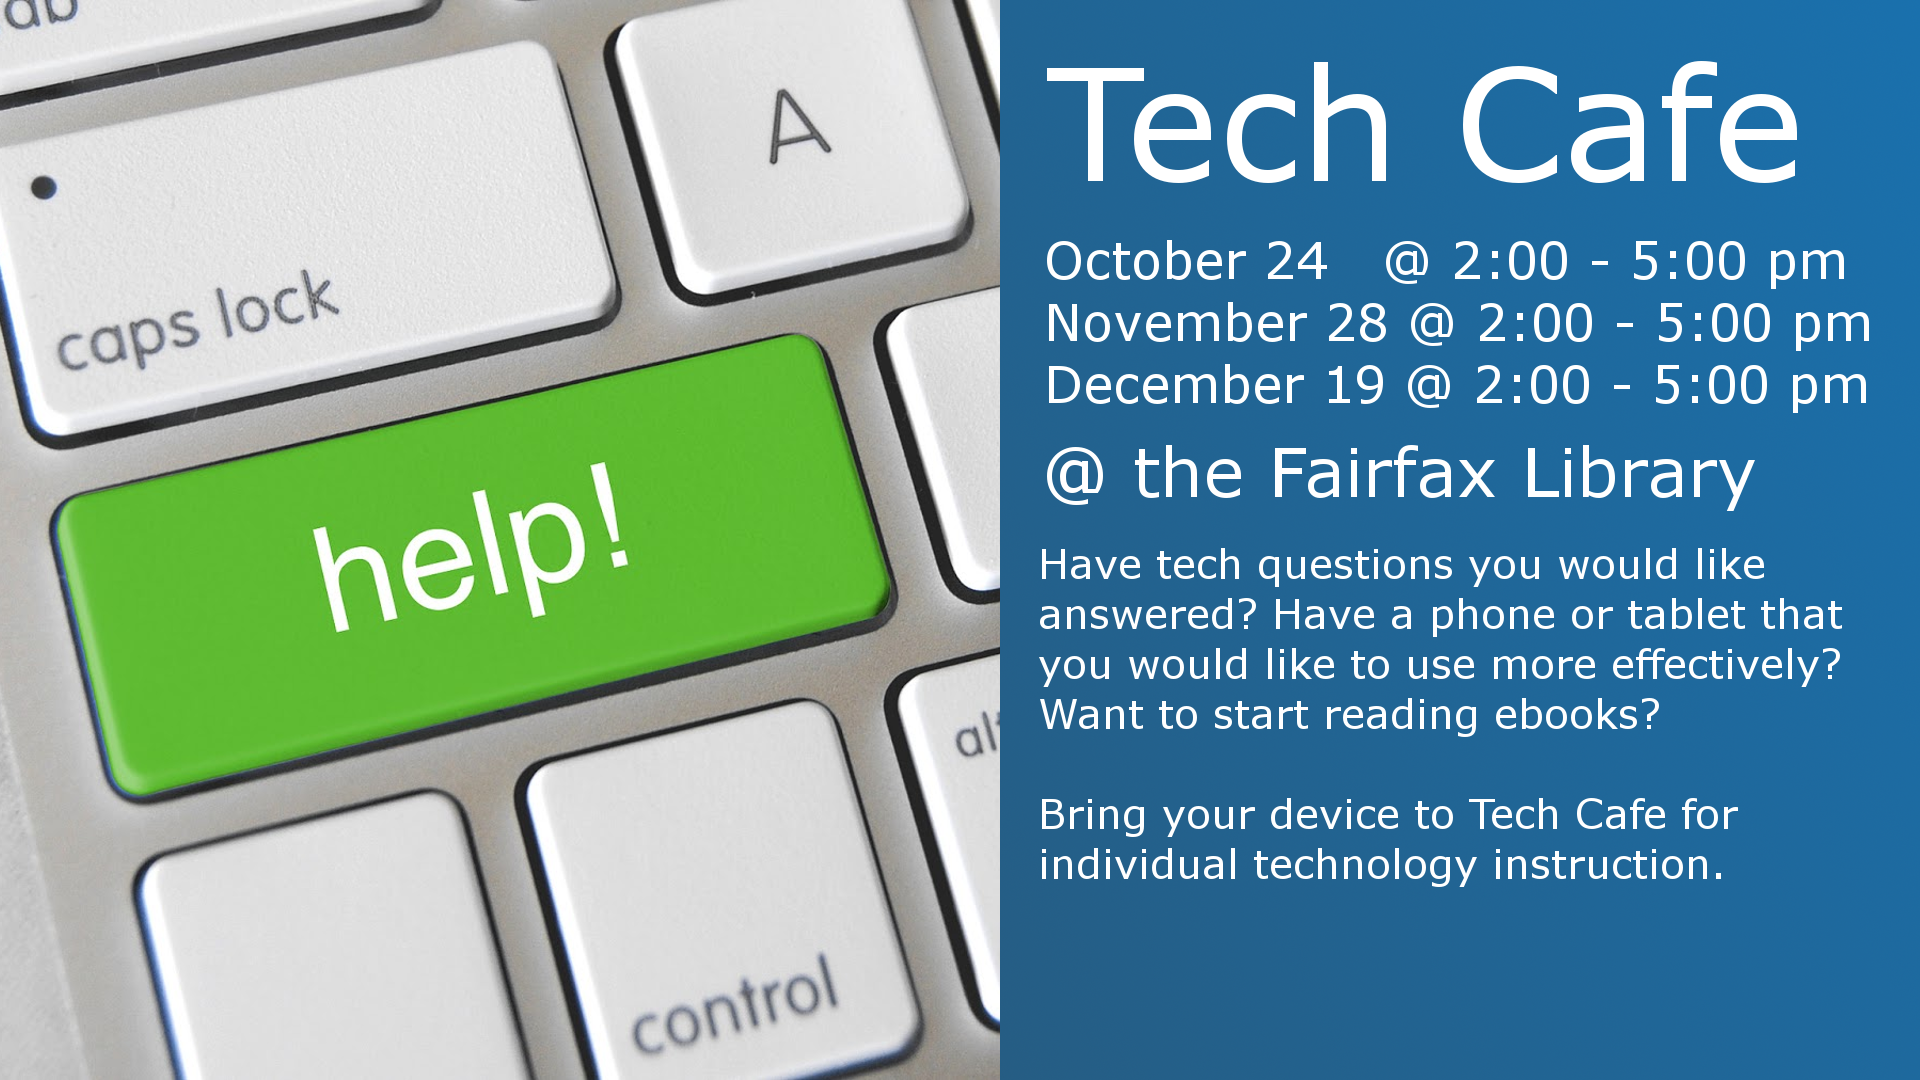 Tech Cafe  October 24 2:00 - 5:00 pm November 28 2:00 - 5:00 pm December 19 2:00 - 5:00 pm  @ the Fairfax Library  Have tech questions you would like answered? Have a phone or tablet you would like to use more effectively? Want to start reading ebooks?  Bring your device to Tech Cafe for individual technology instruction.